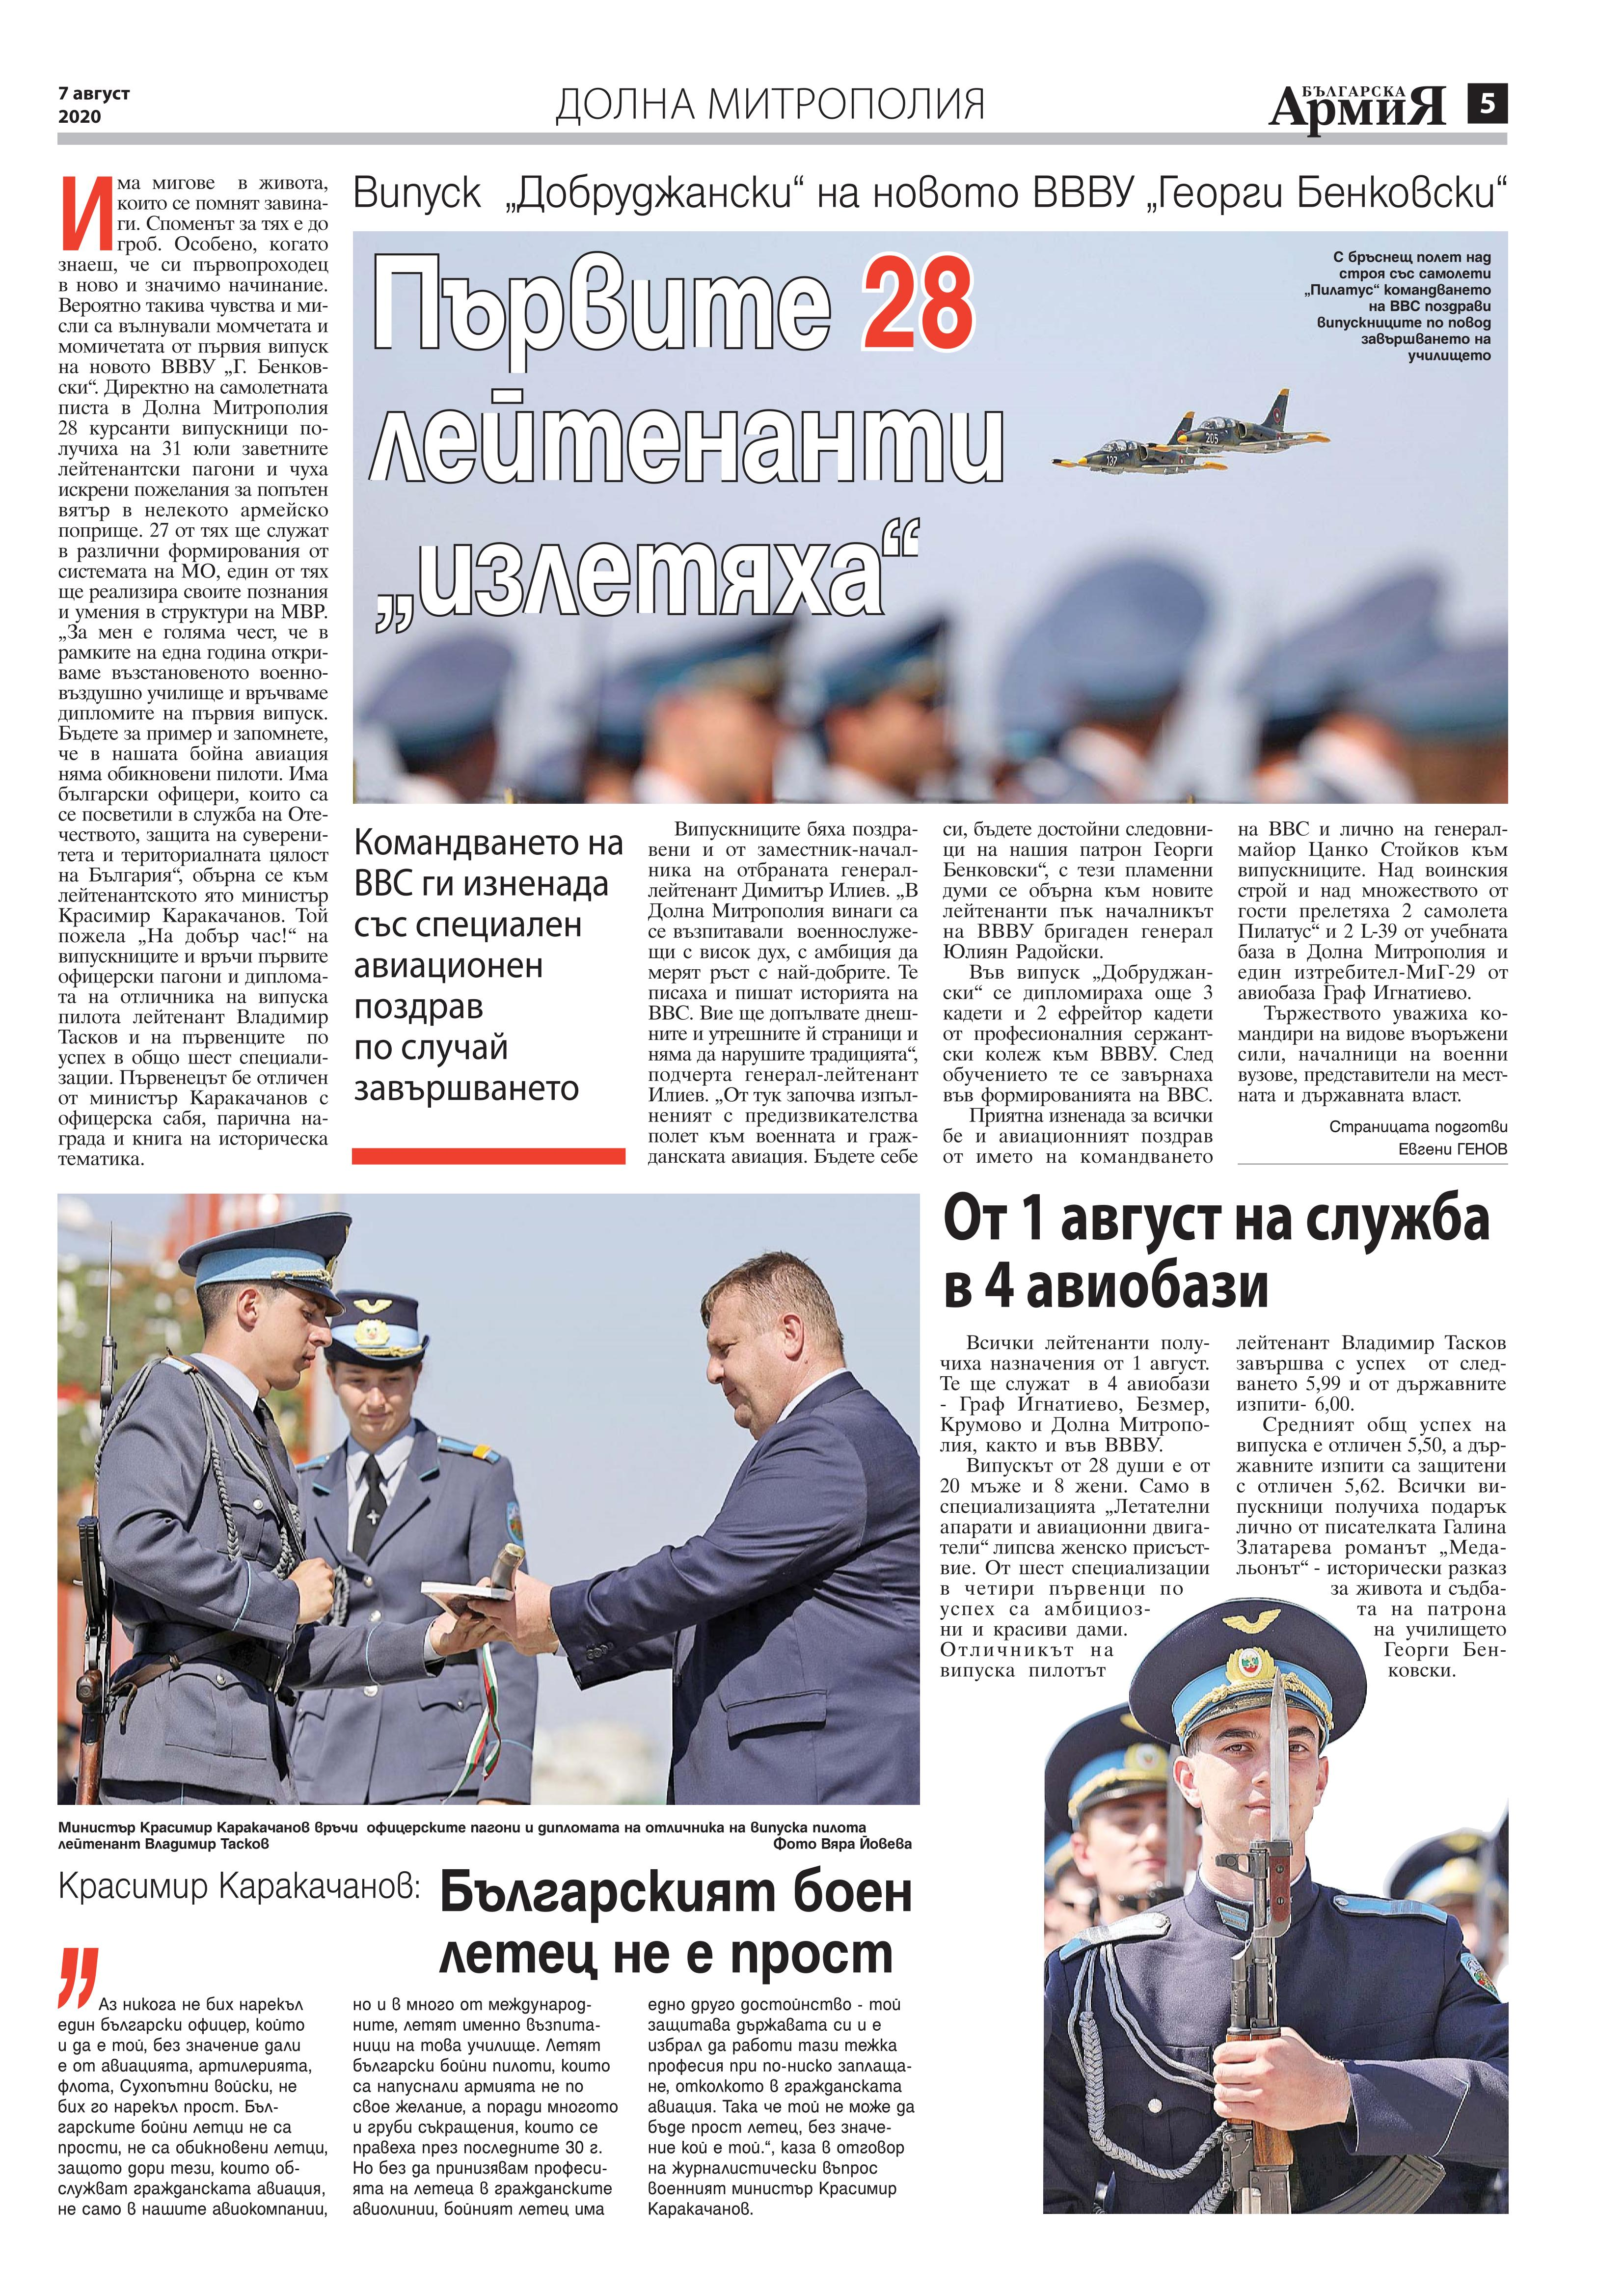 https://armymedia.bg/wp-content/uploads/2015/06/05.page1_-145.jpg